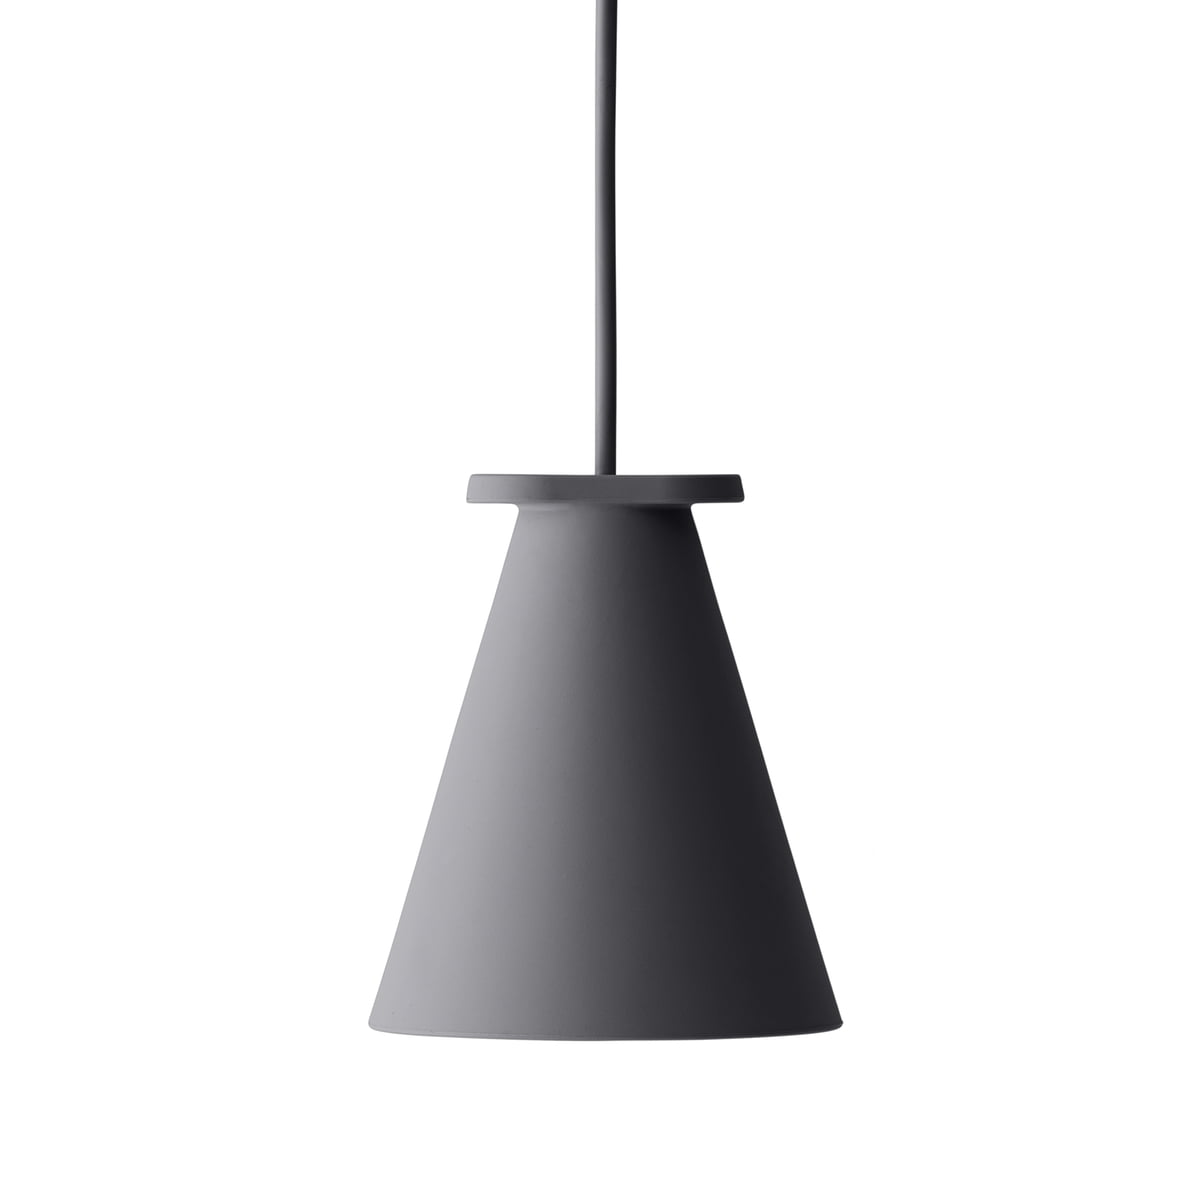 the bollard lamp by menu connox shop. Black Bedroom Furniture Sets. Home Design Ideas